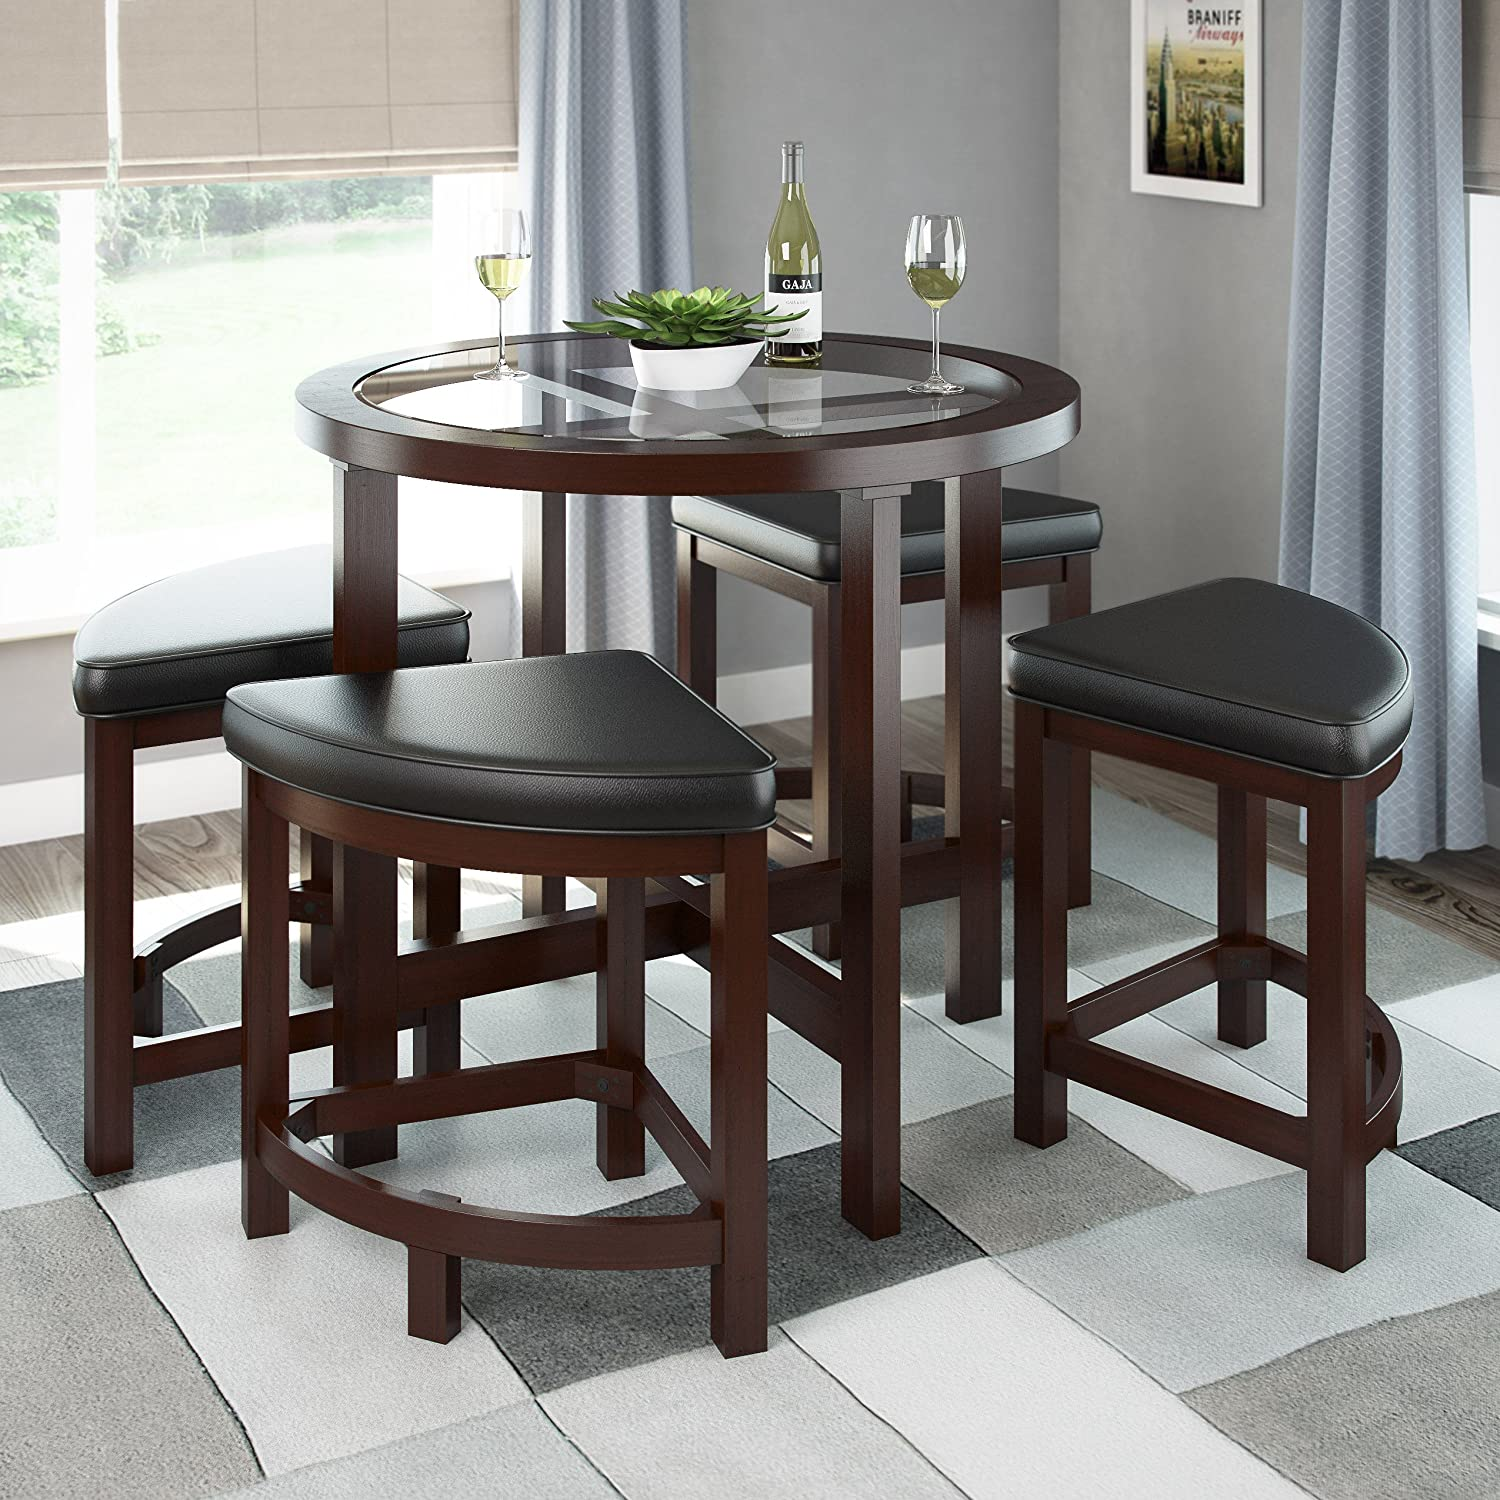 Amazon.com   CorLiving DBG 699 K Belgrove Dark Espresso Stained Dining Table  With 4 Stools   Tables